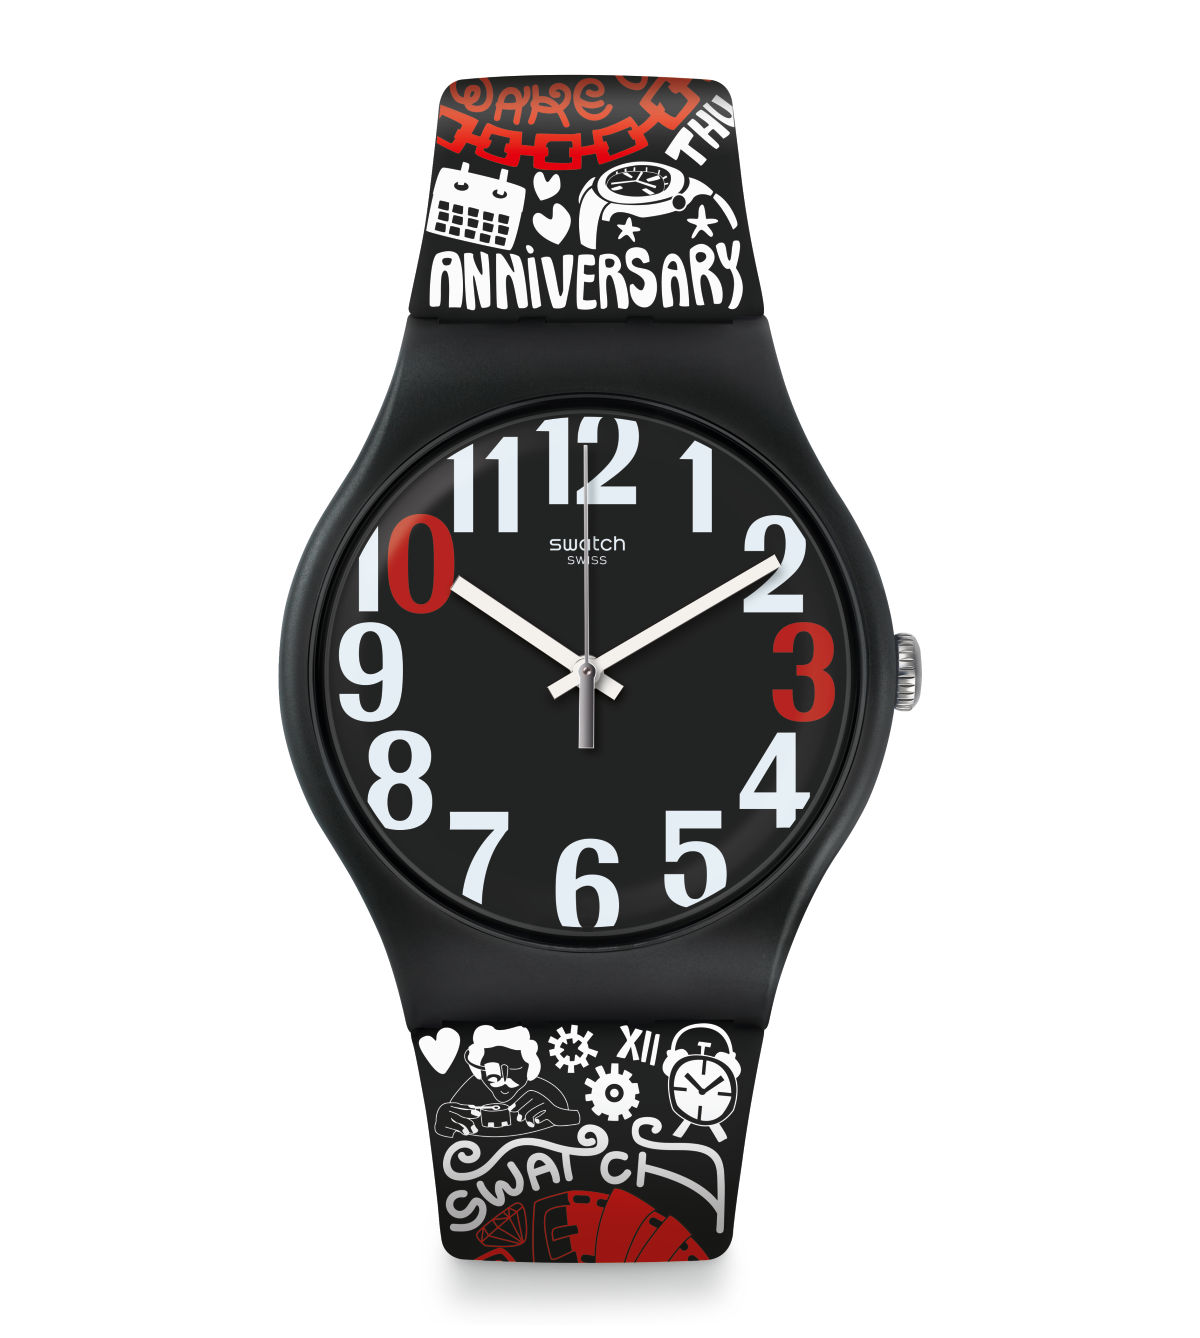 30 AND TICKING (SUOZ322) - Swatch® Indonesia